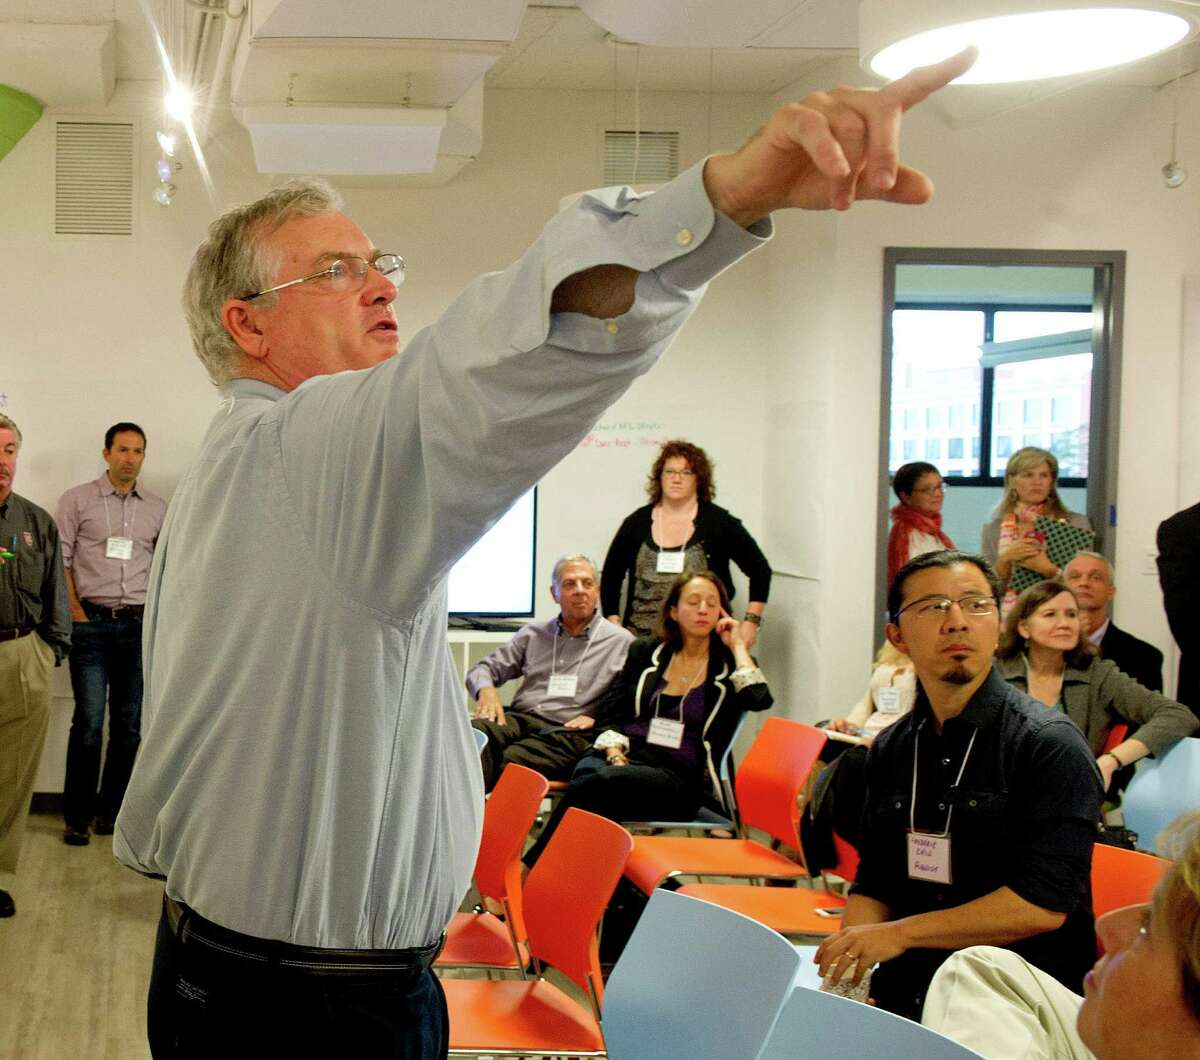 Bryan Mattimore of The Growth Engine leads a brainstorming session during the Creativity in the Workplace program at Comradity's Stamford office on Wednesday, October 1, 2014.